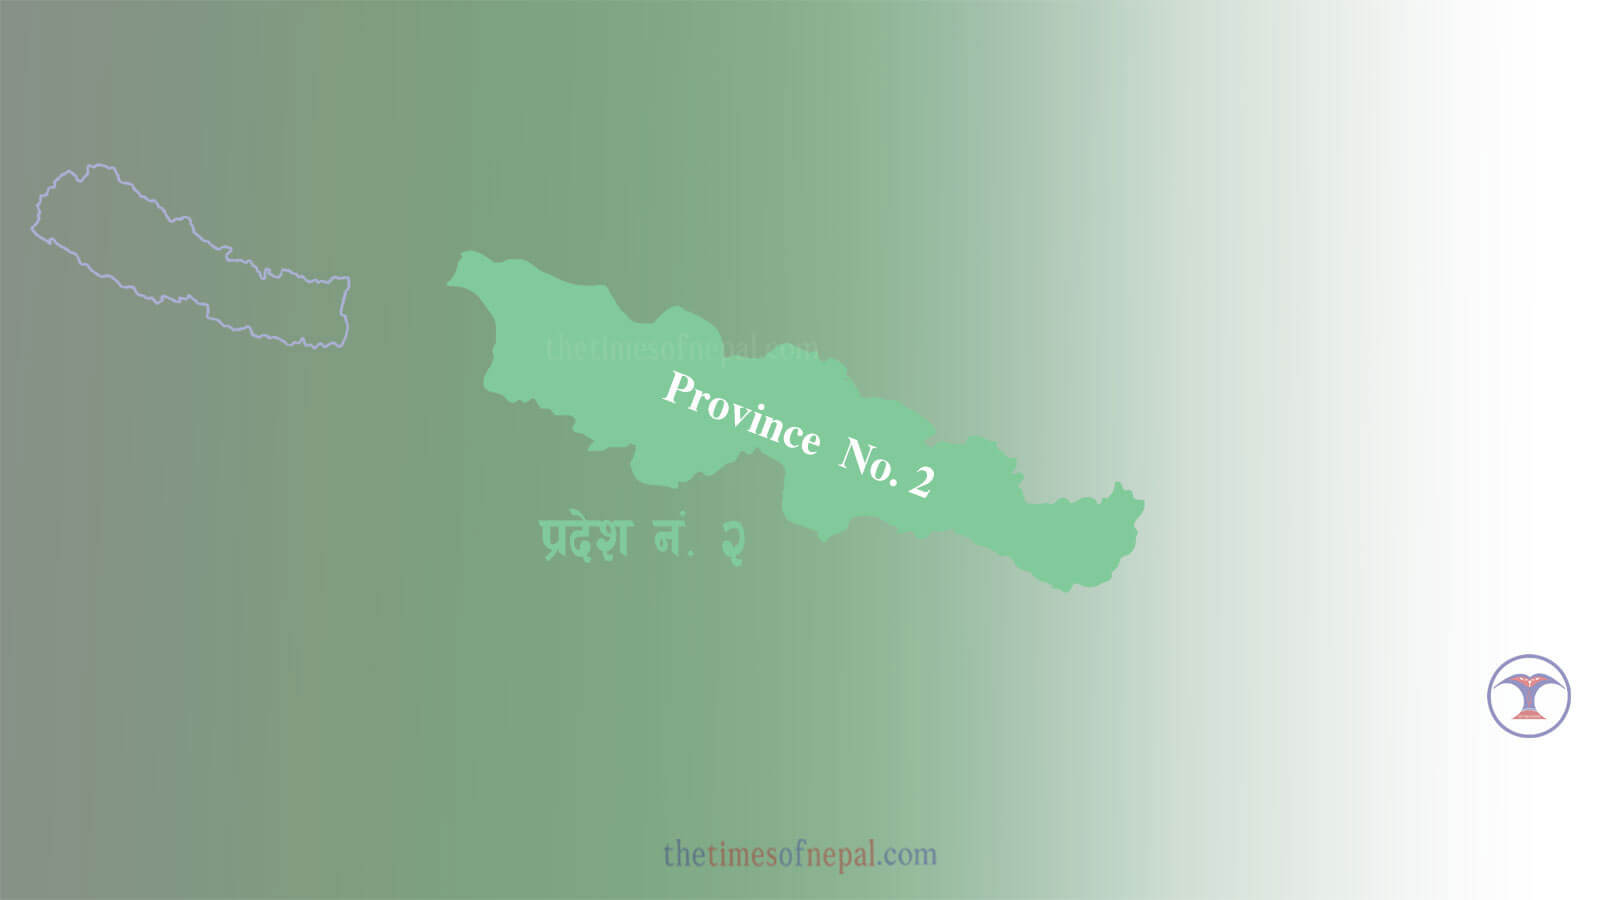 province no 2 - The Times Of Nepal